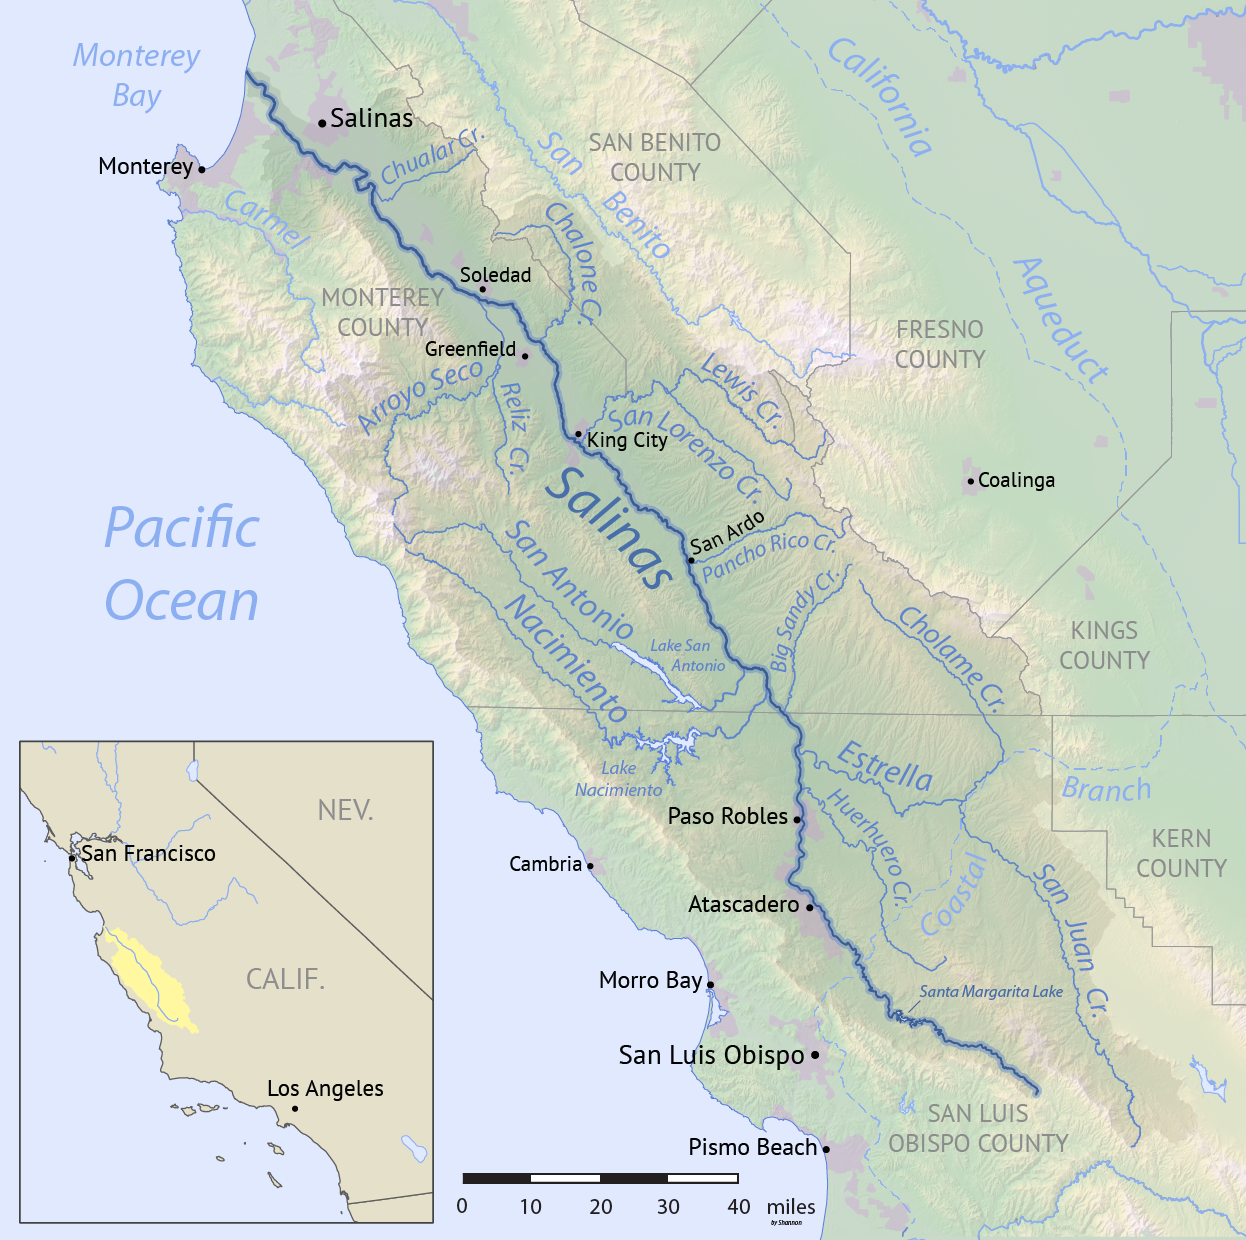 Map of the Salinas River watershed Salinas